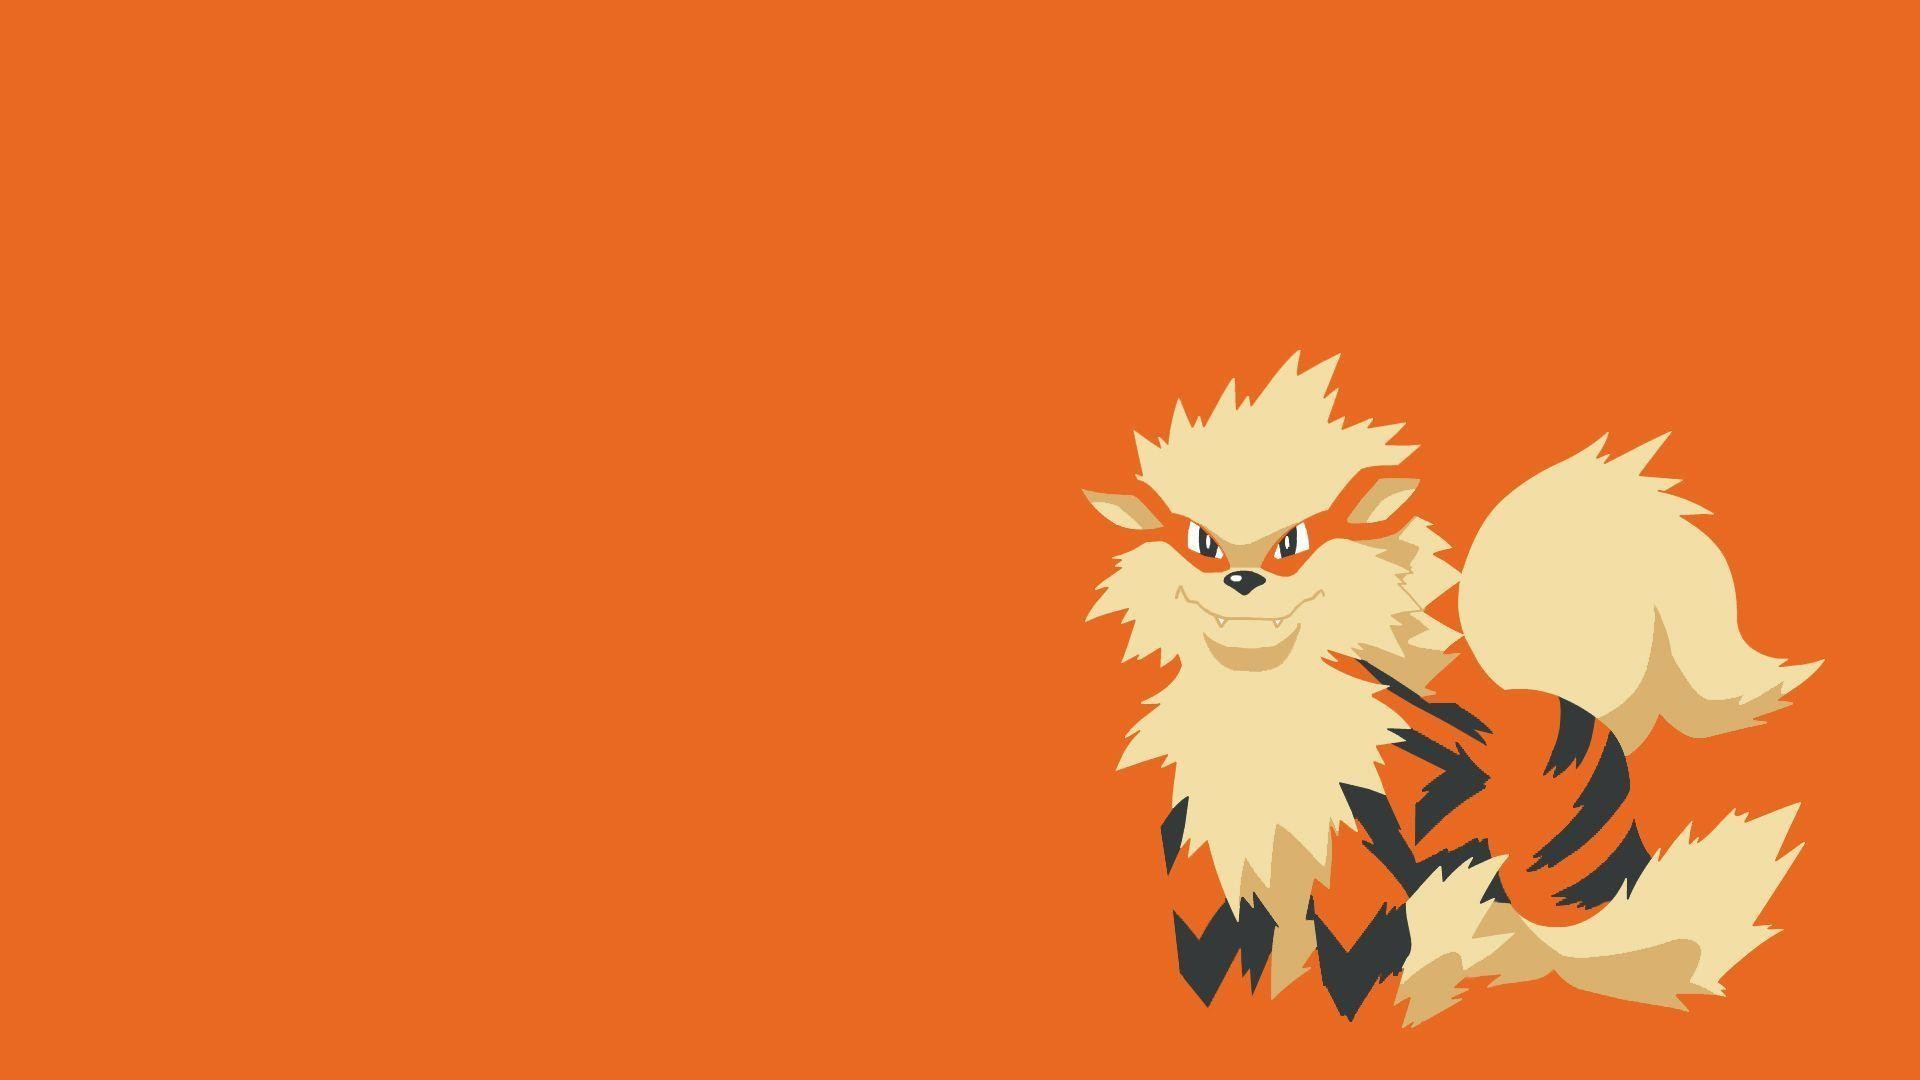 Res: 1920x1080, Arcanine Wallpapers